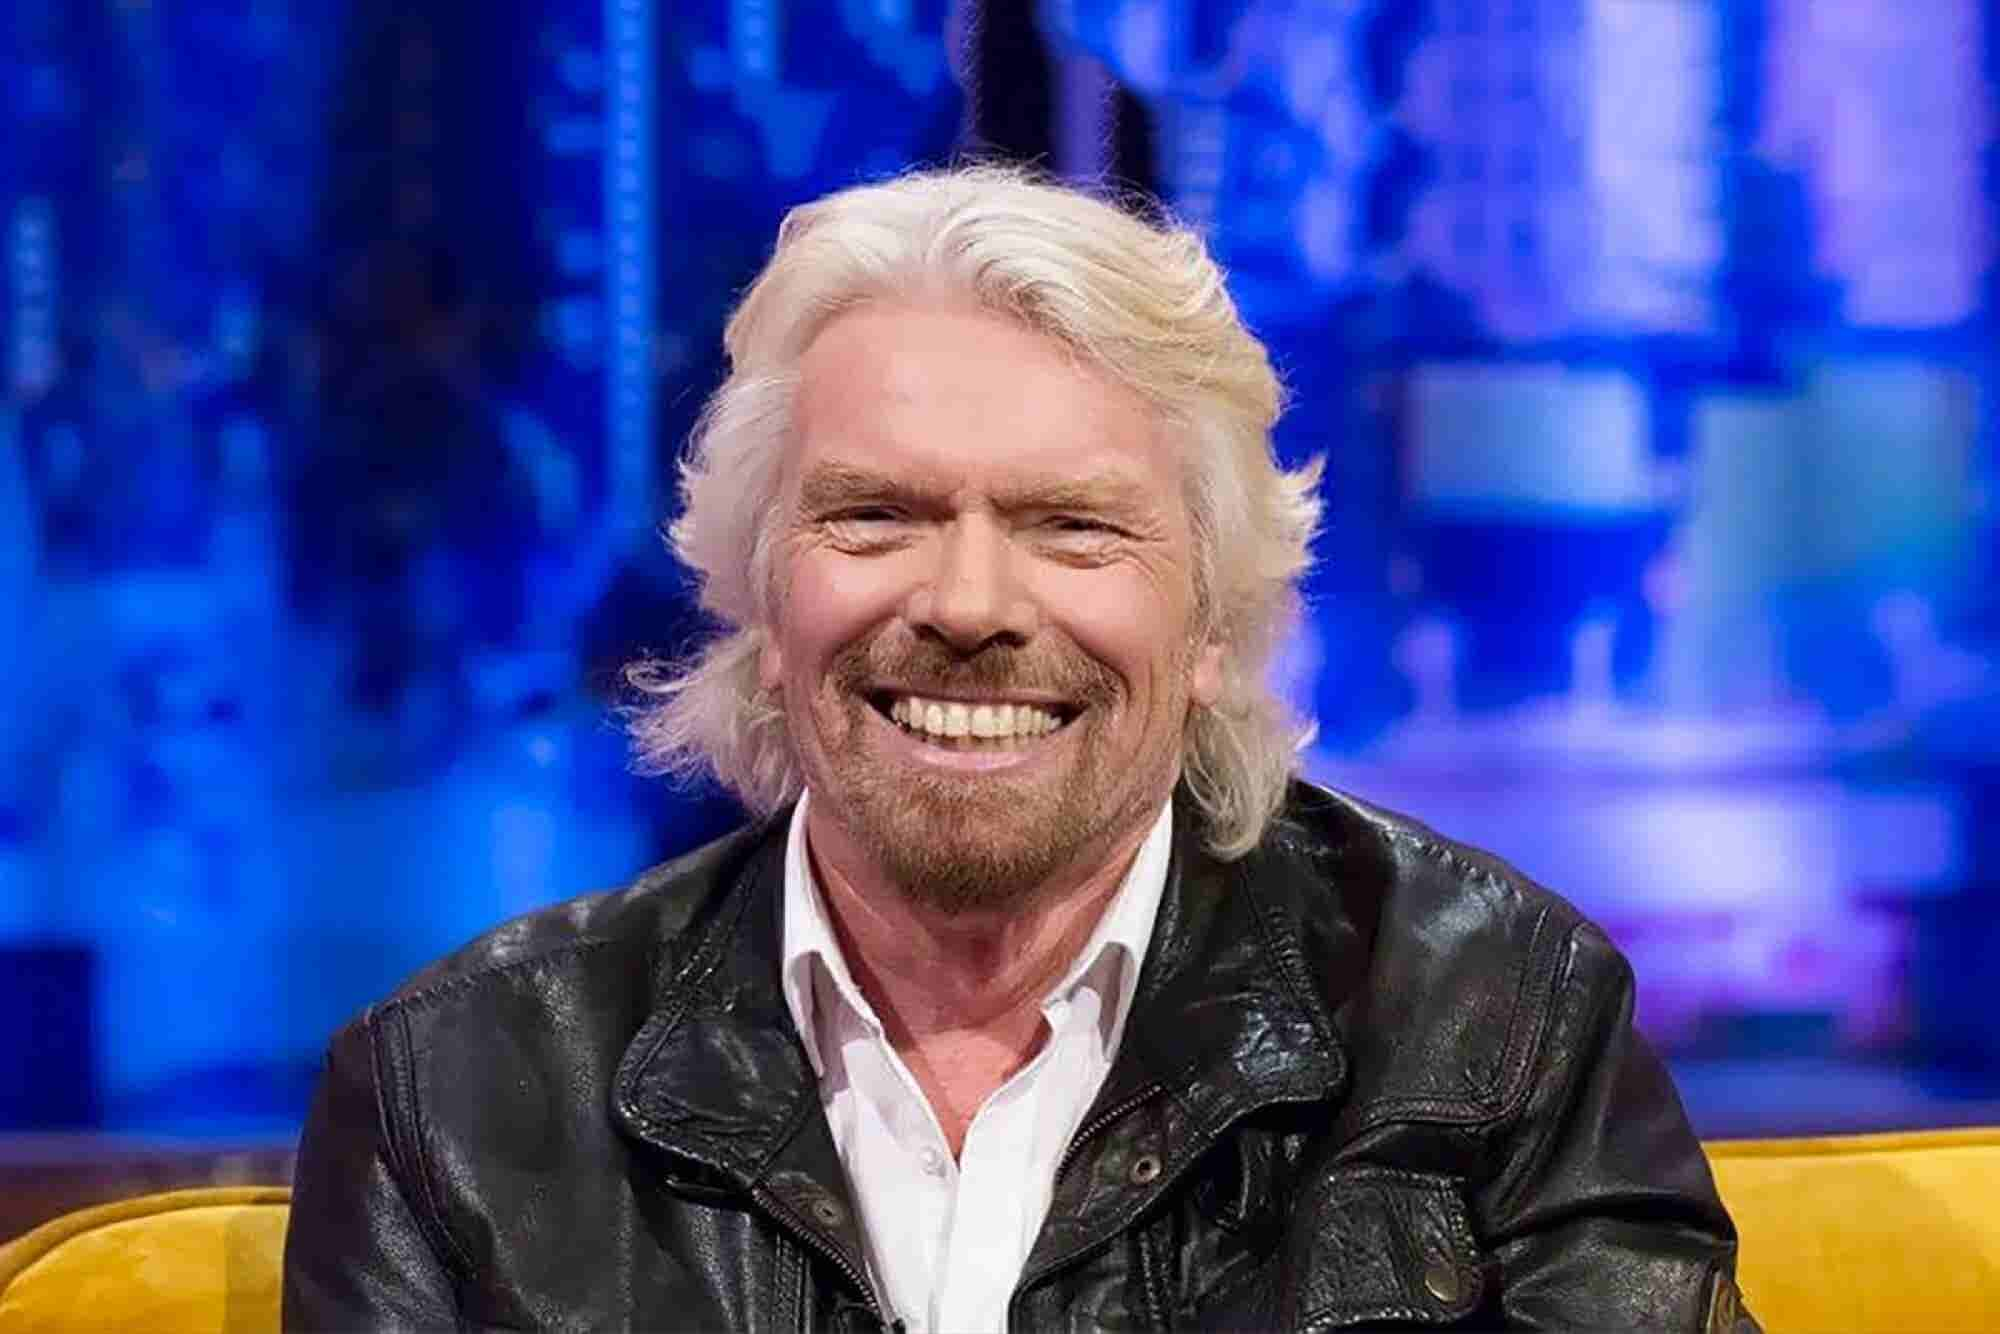 How Richard Branson Built His $5.1 Billion Fortune